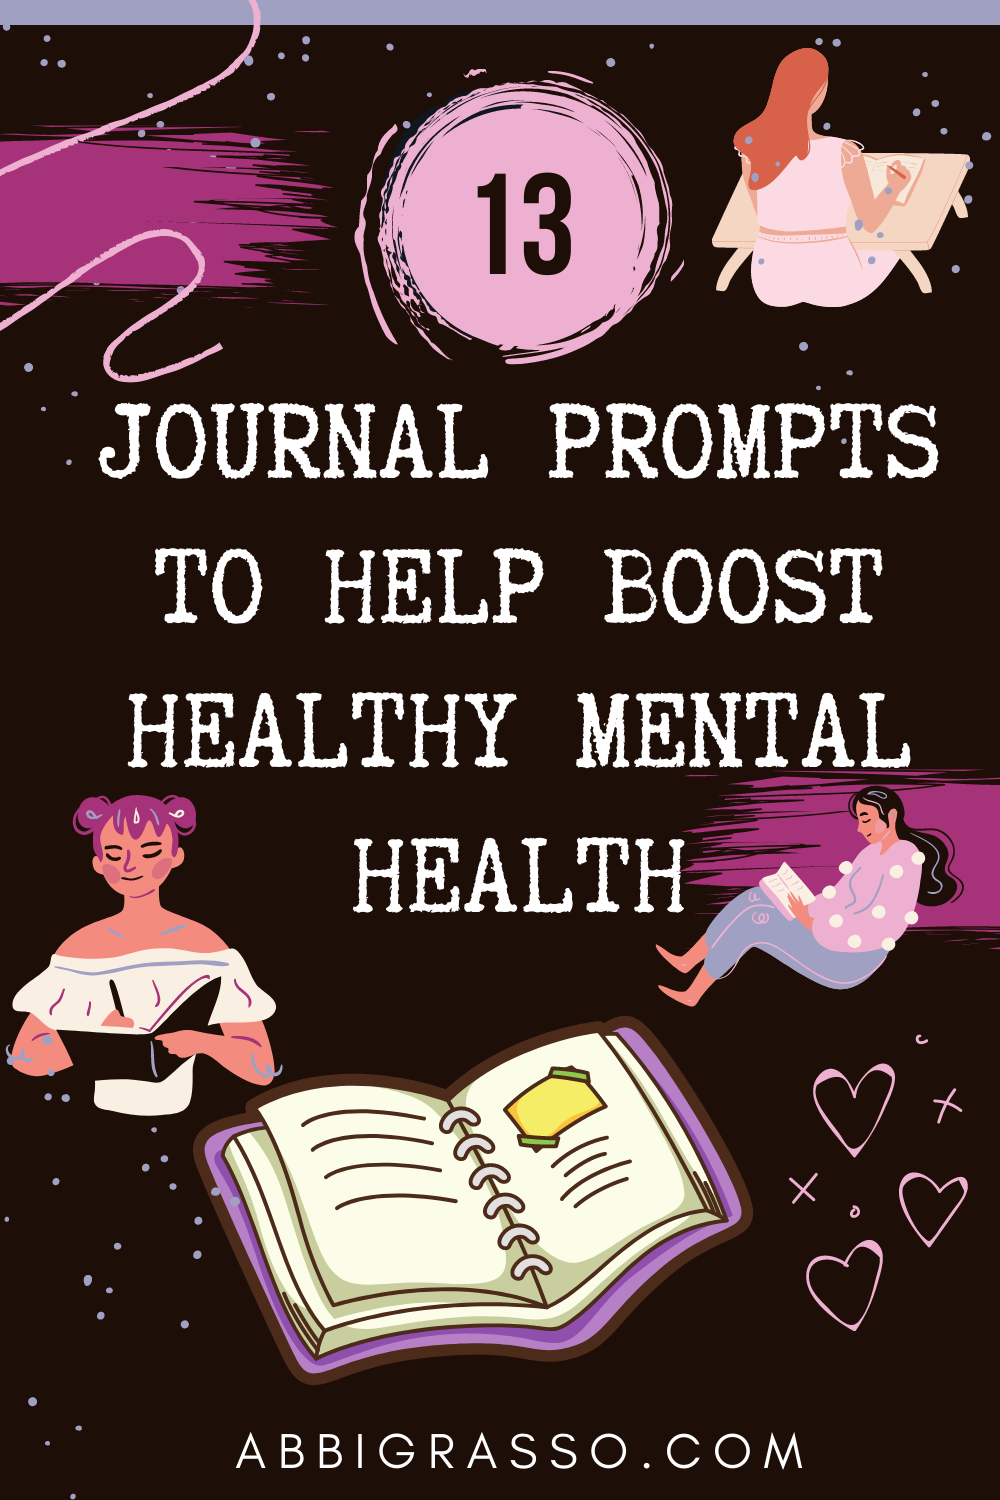 Daily Blog #281- 13 Journal prompts for better mental health